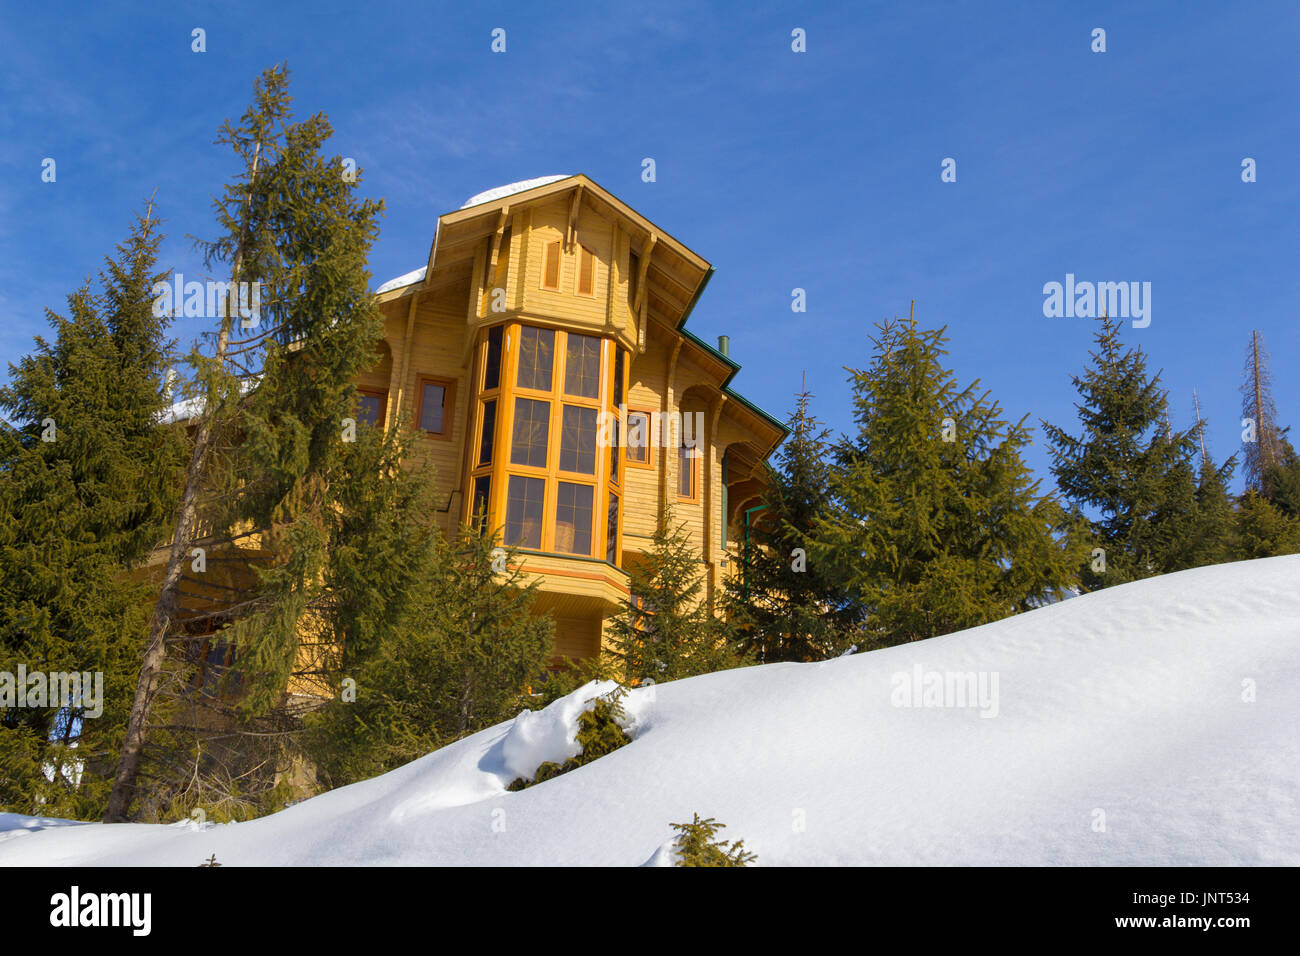 woodland, vacations, sky, nature, tree, hut, snow, forest, non-urban, house, cabin, mountain, scene, landscape, cold, alps, european, christmas, chale - Stock Image